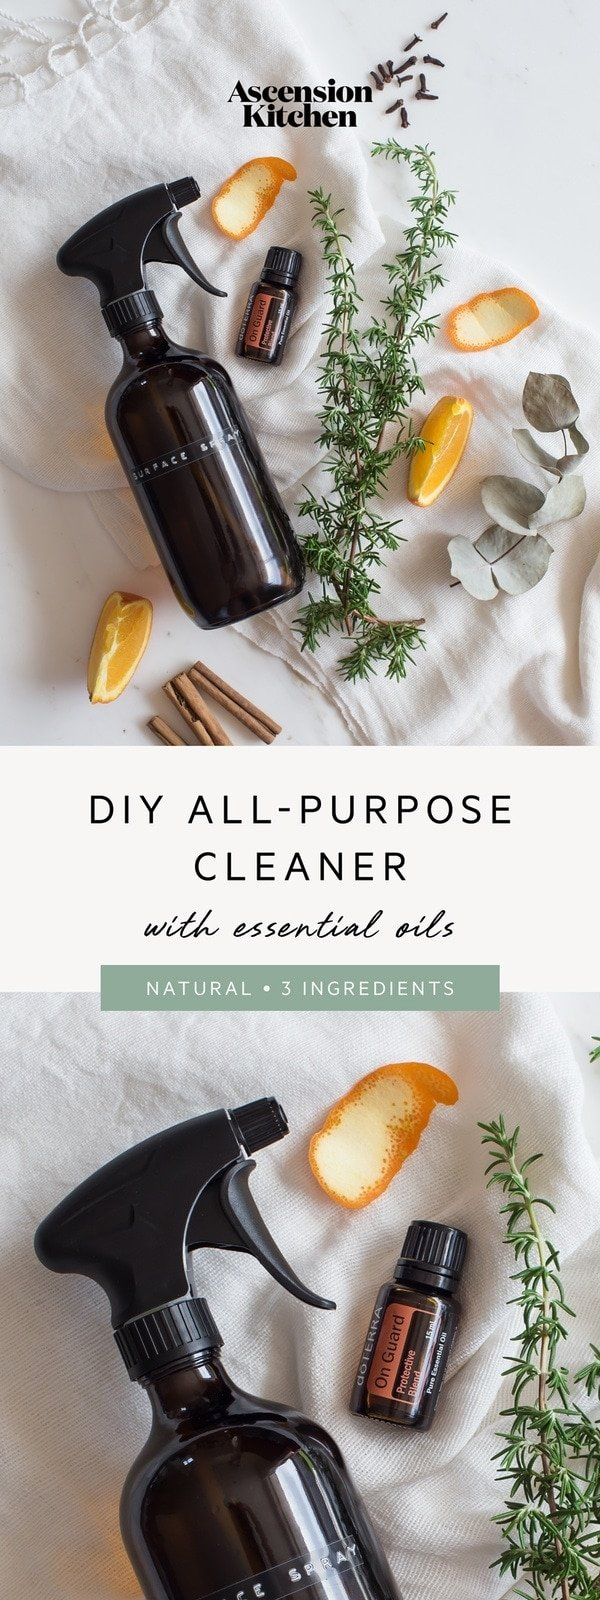 3 ingredient natural DIY all-purpose cleaner with vinegar and essential oils. Green cleaning recipe. #naturalcleaning #DIYcleaning #non-tox #greencleaning #greencleaningideas #essentialoilrecipes #essentialoilDIY #AscensionKitchen